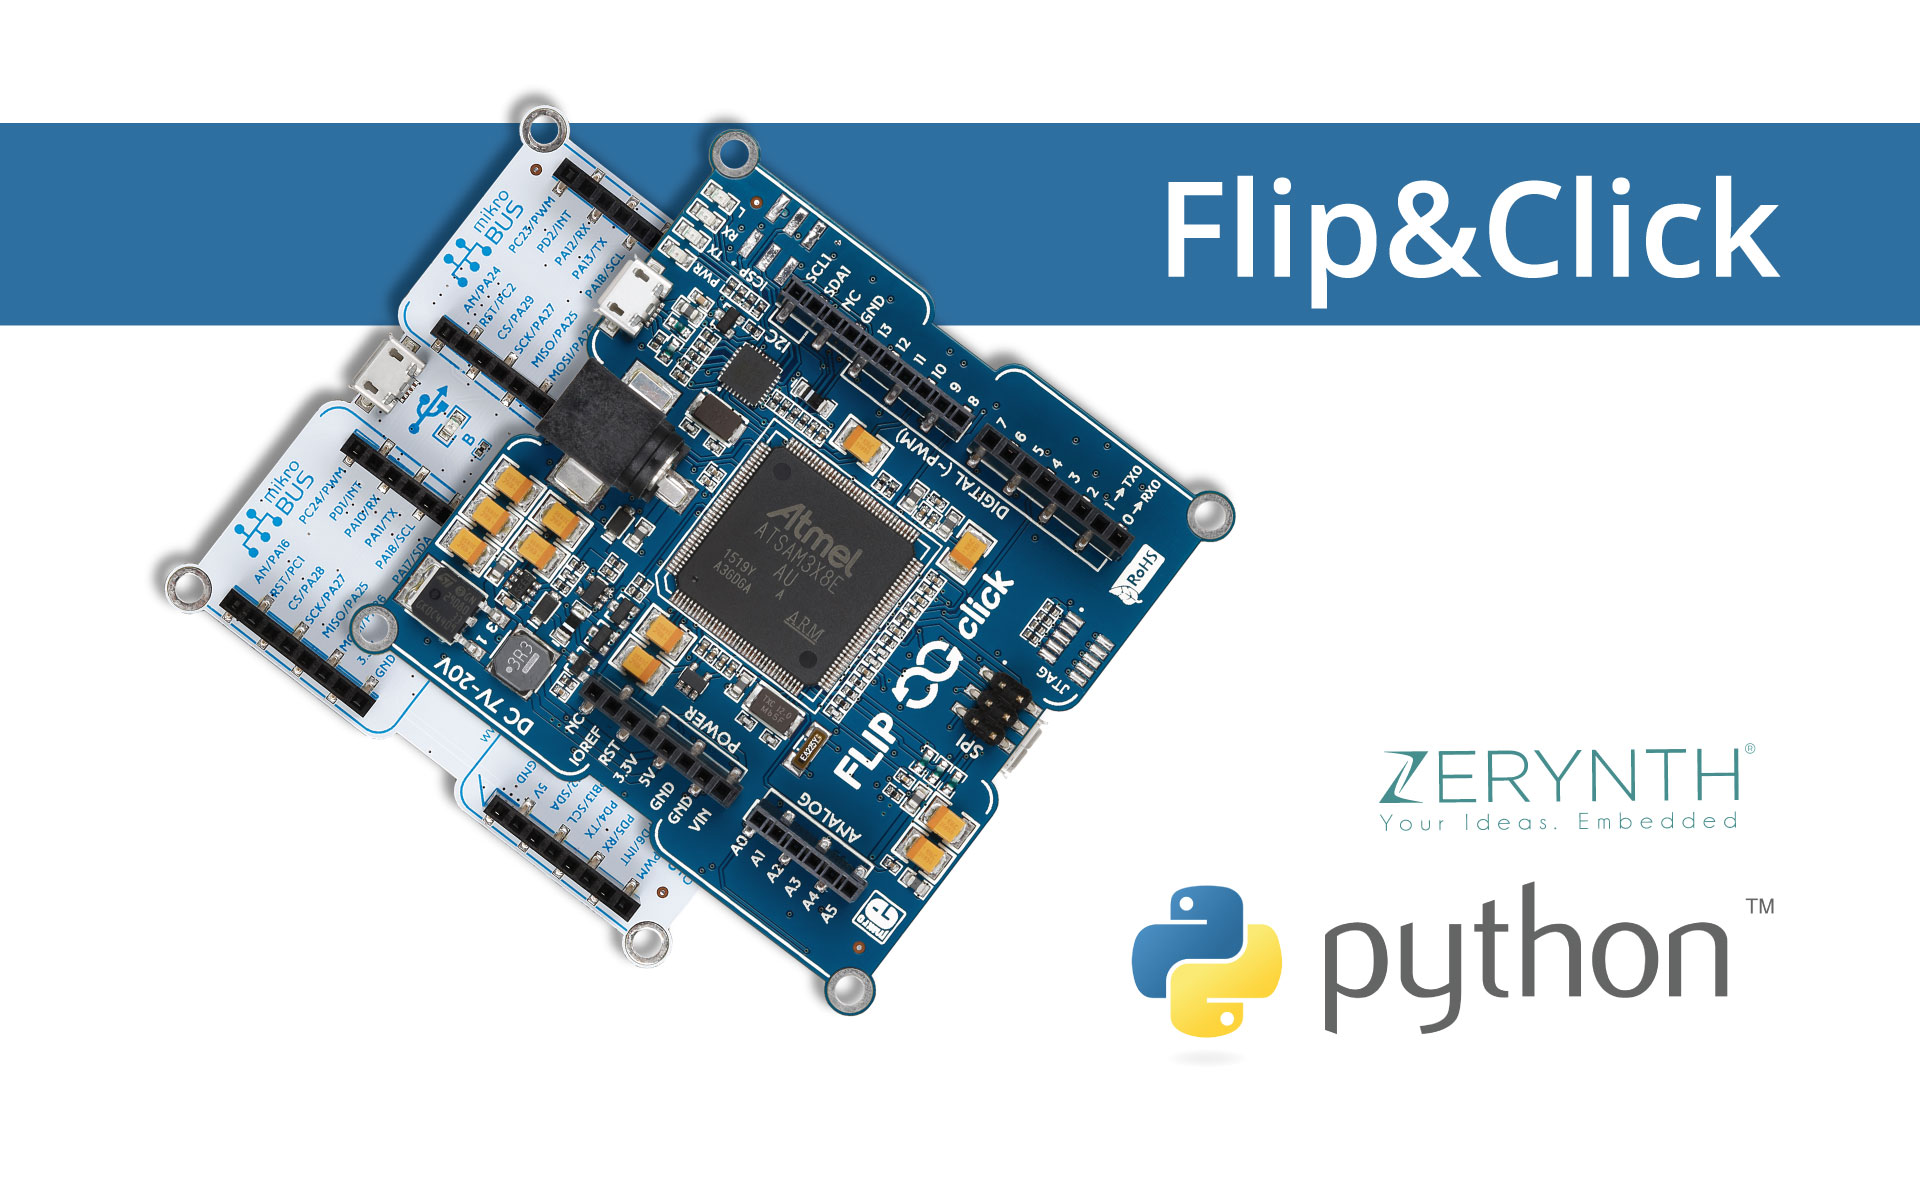 Flip&Click and Python to control servo motors for IoT projects